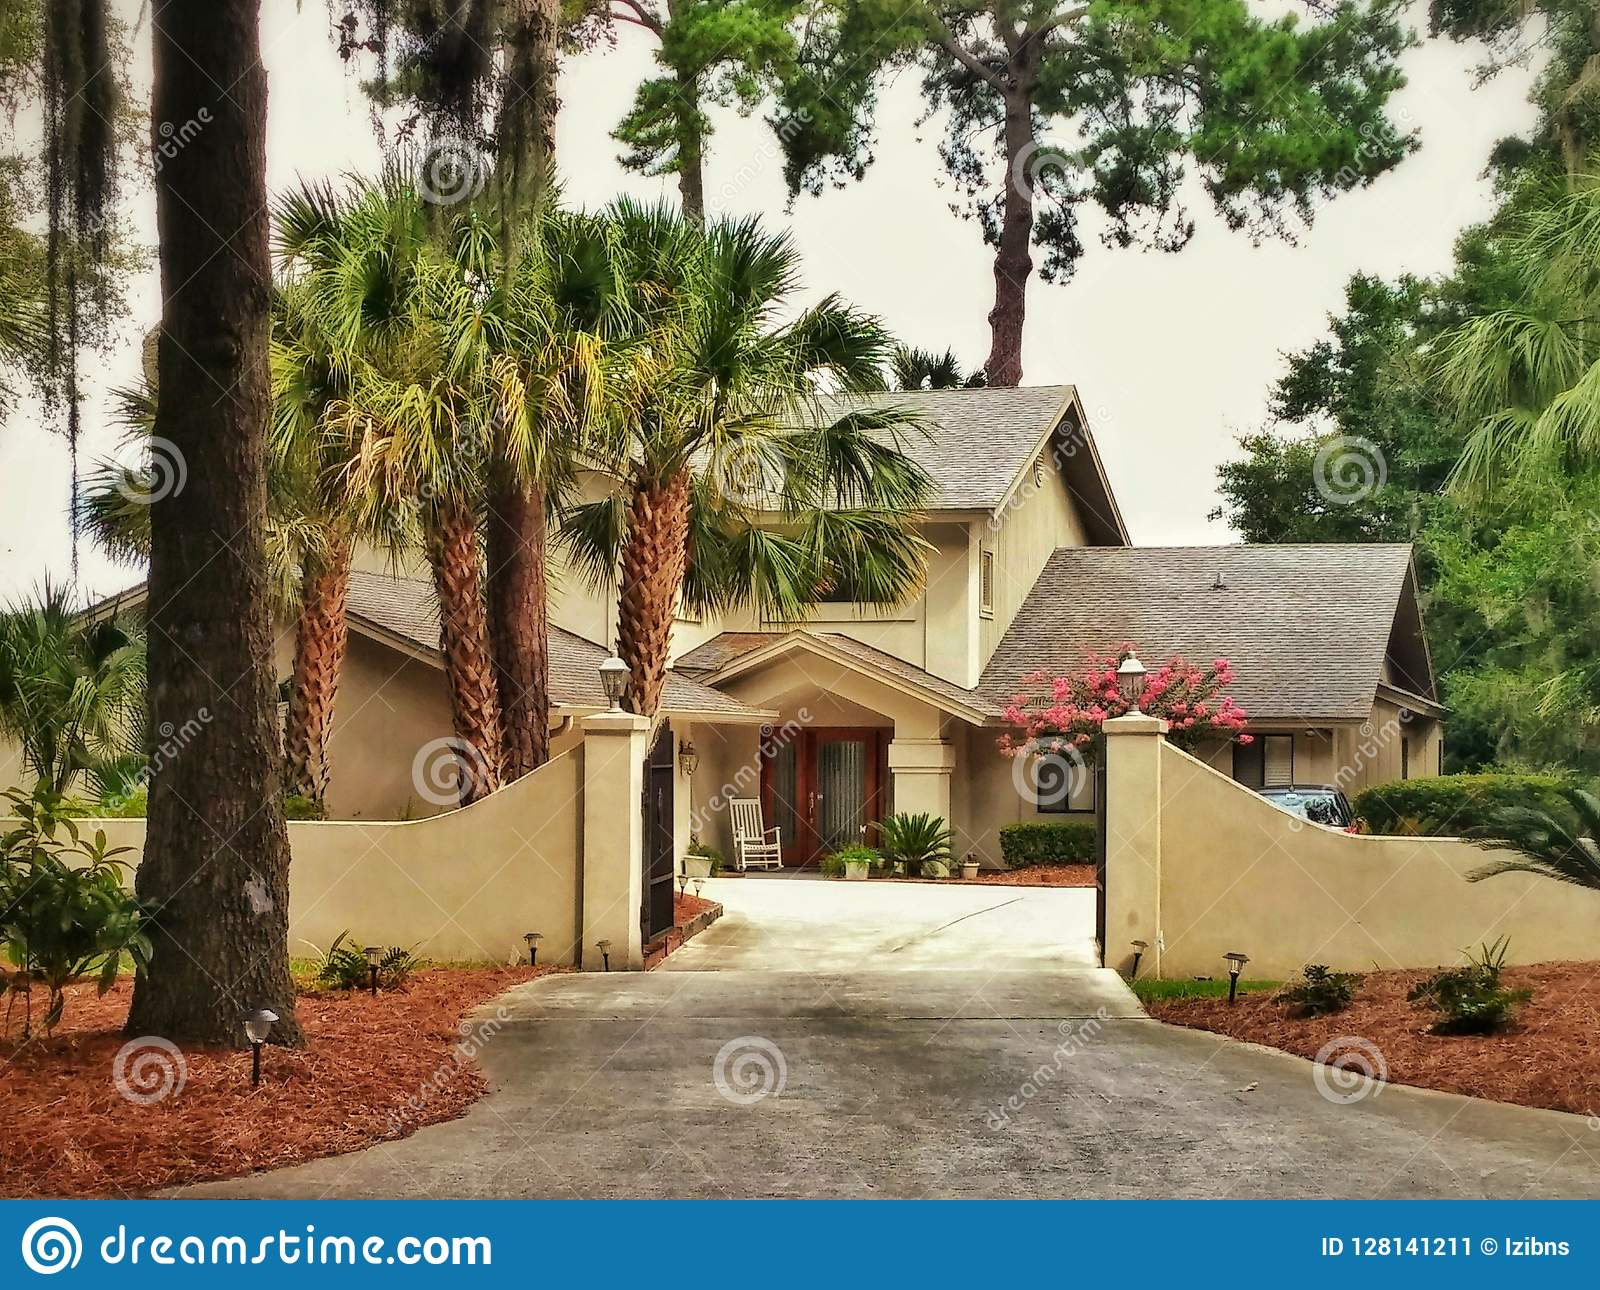 Big yellow american house with palm trees in the woods stock image